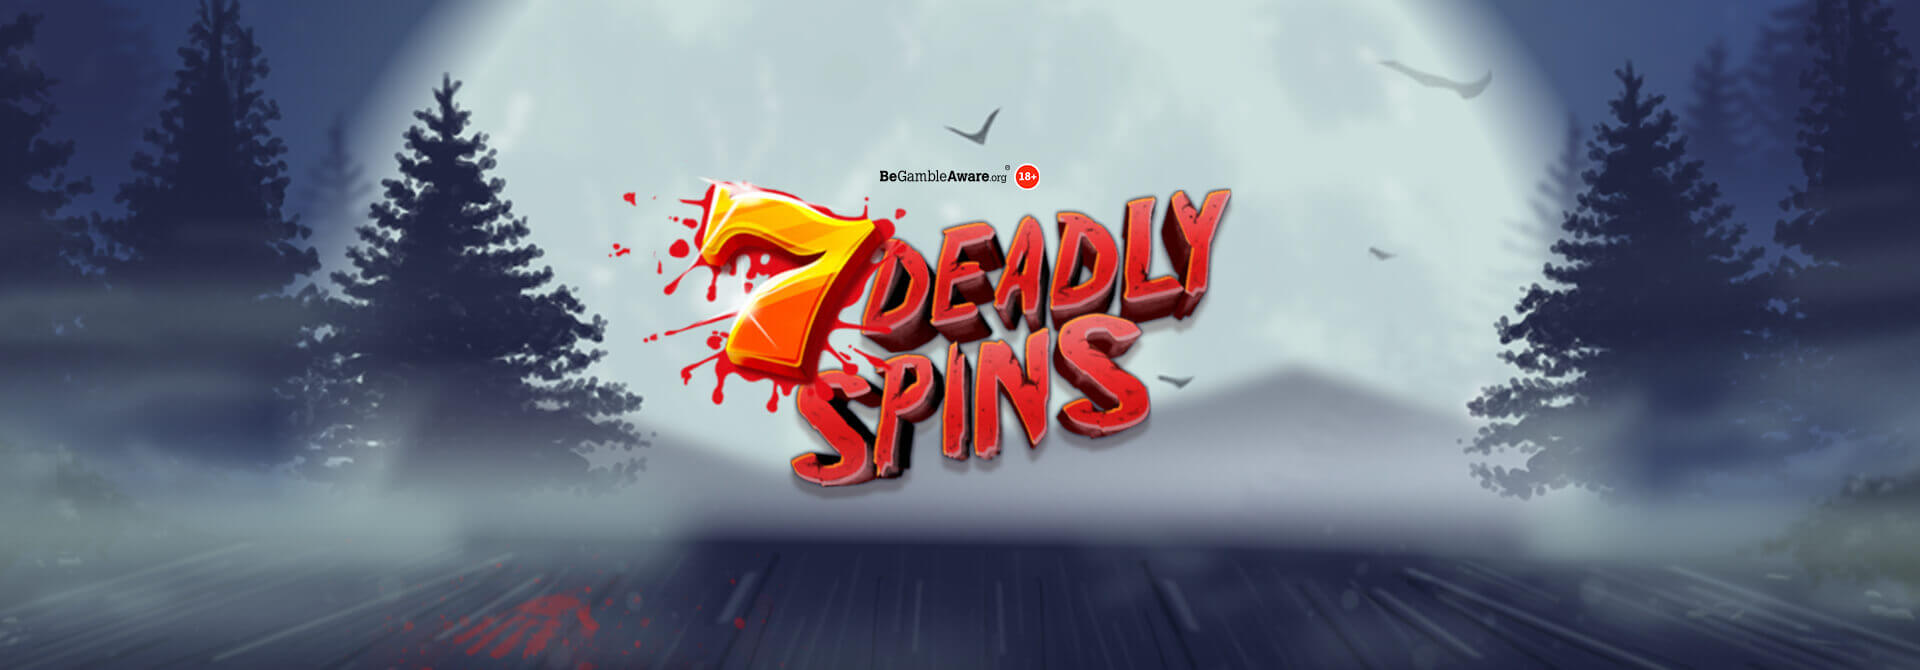 7 Deadly Spins